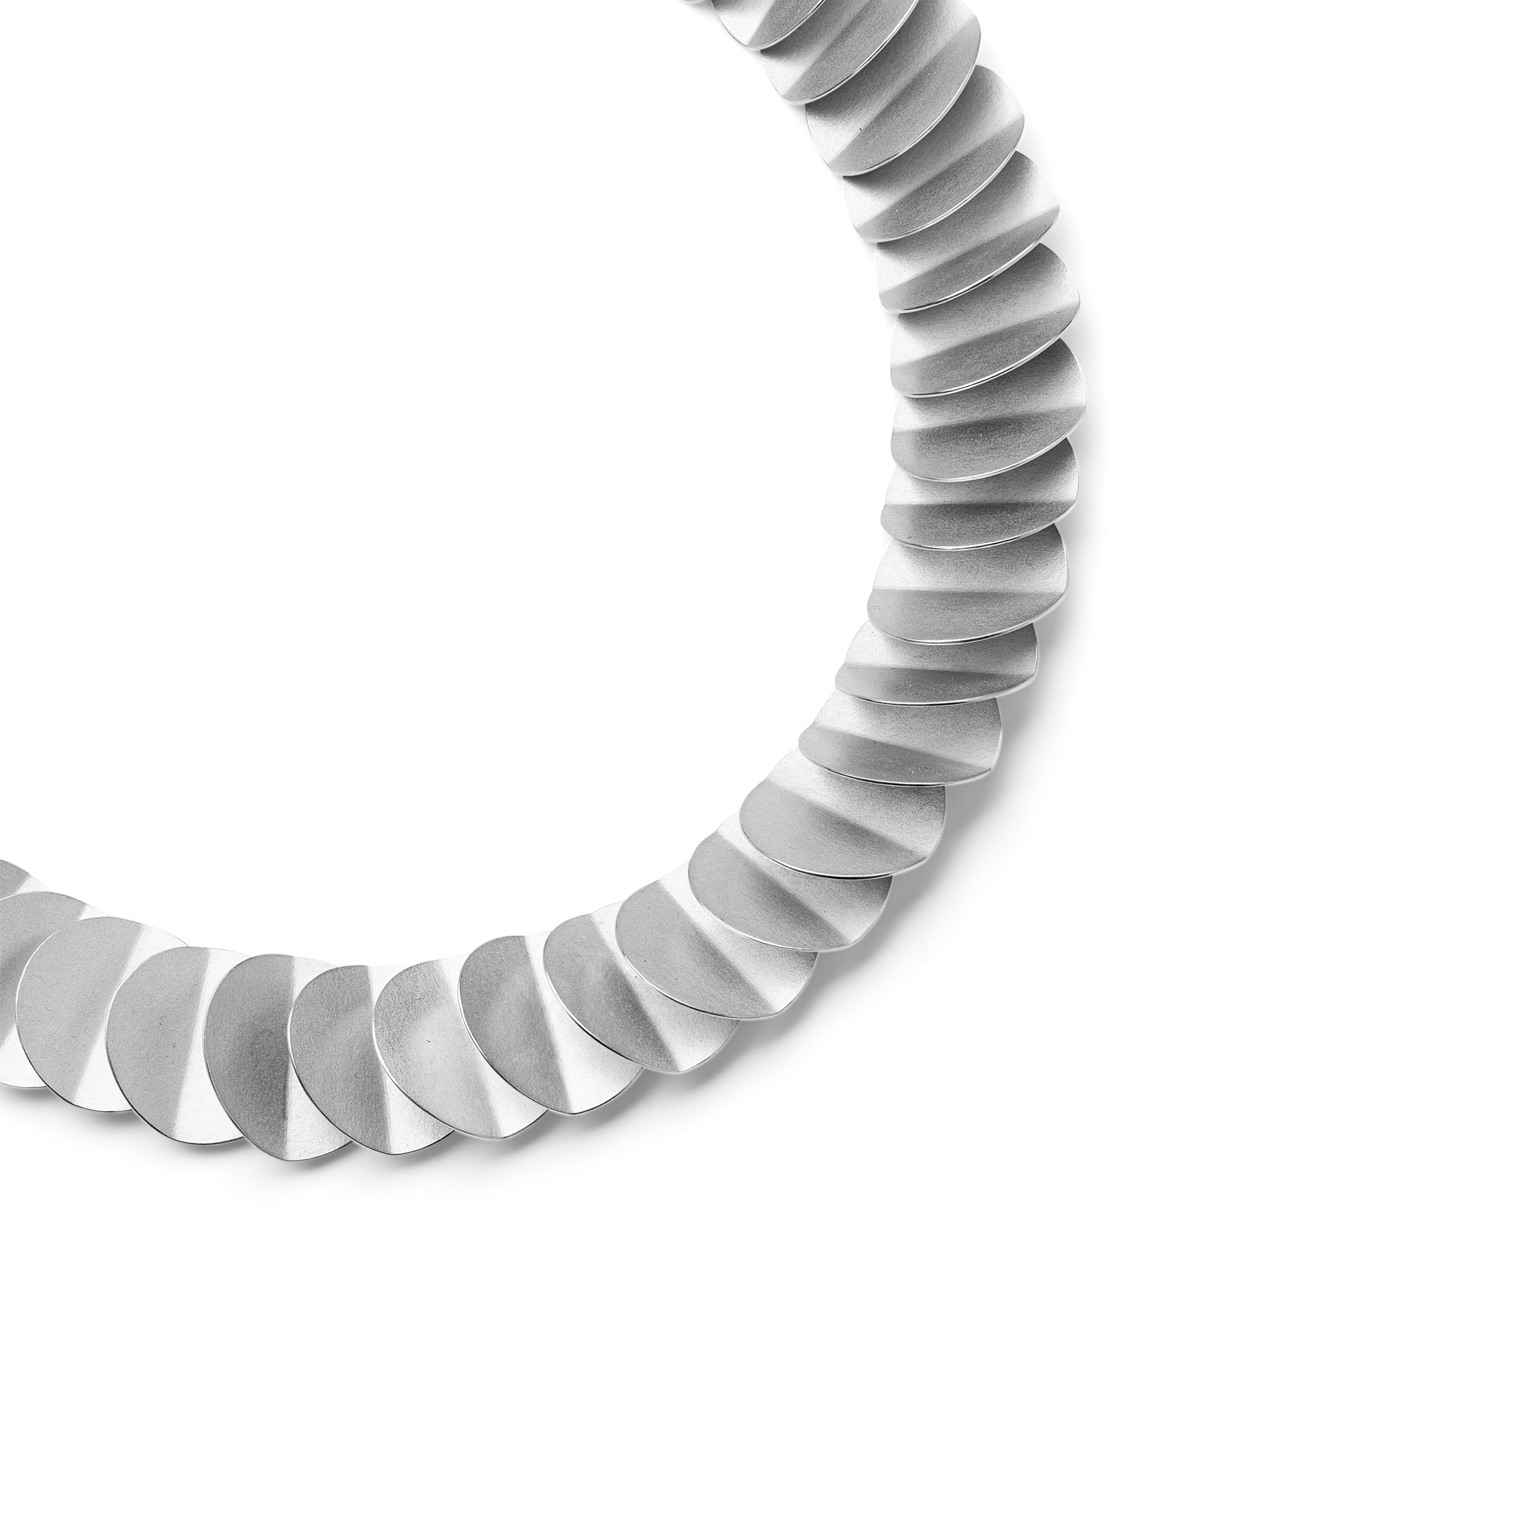 Heather Woof, Turbine necklace in silver. 2018